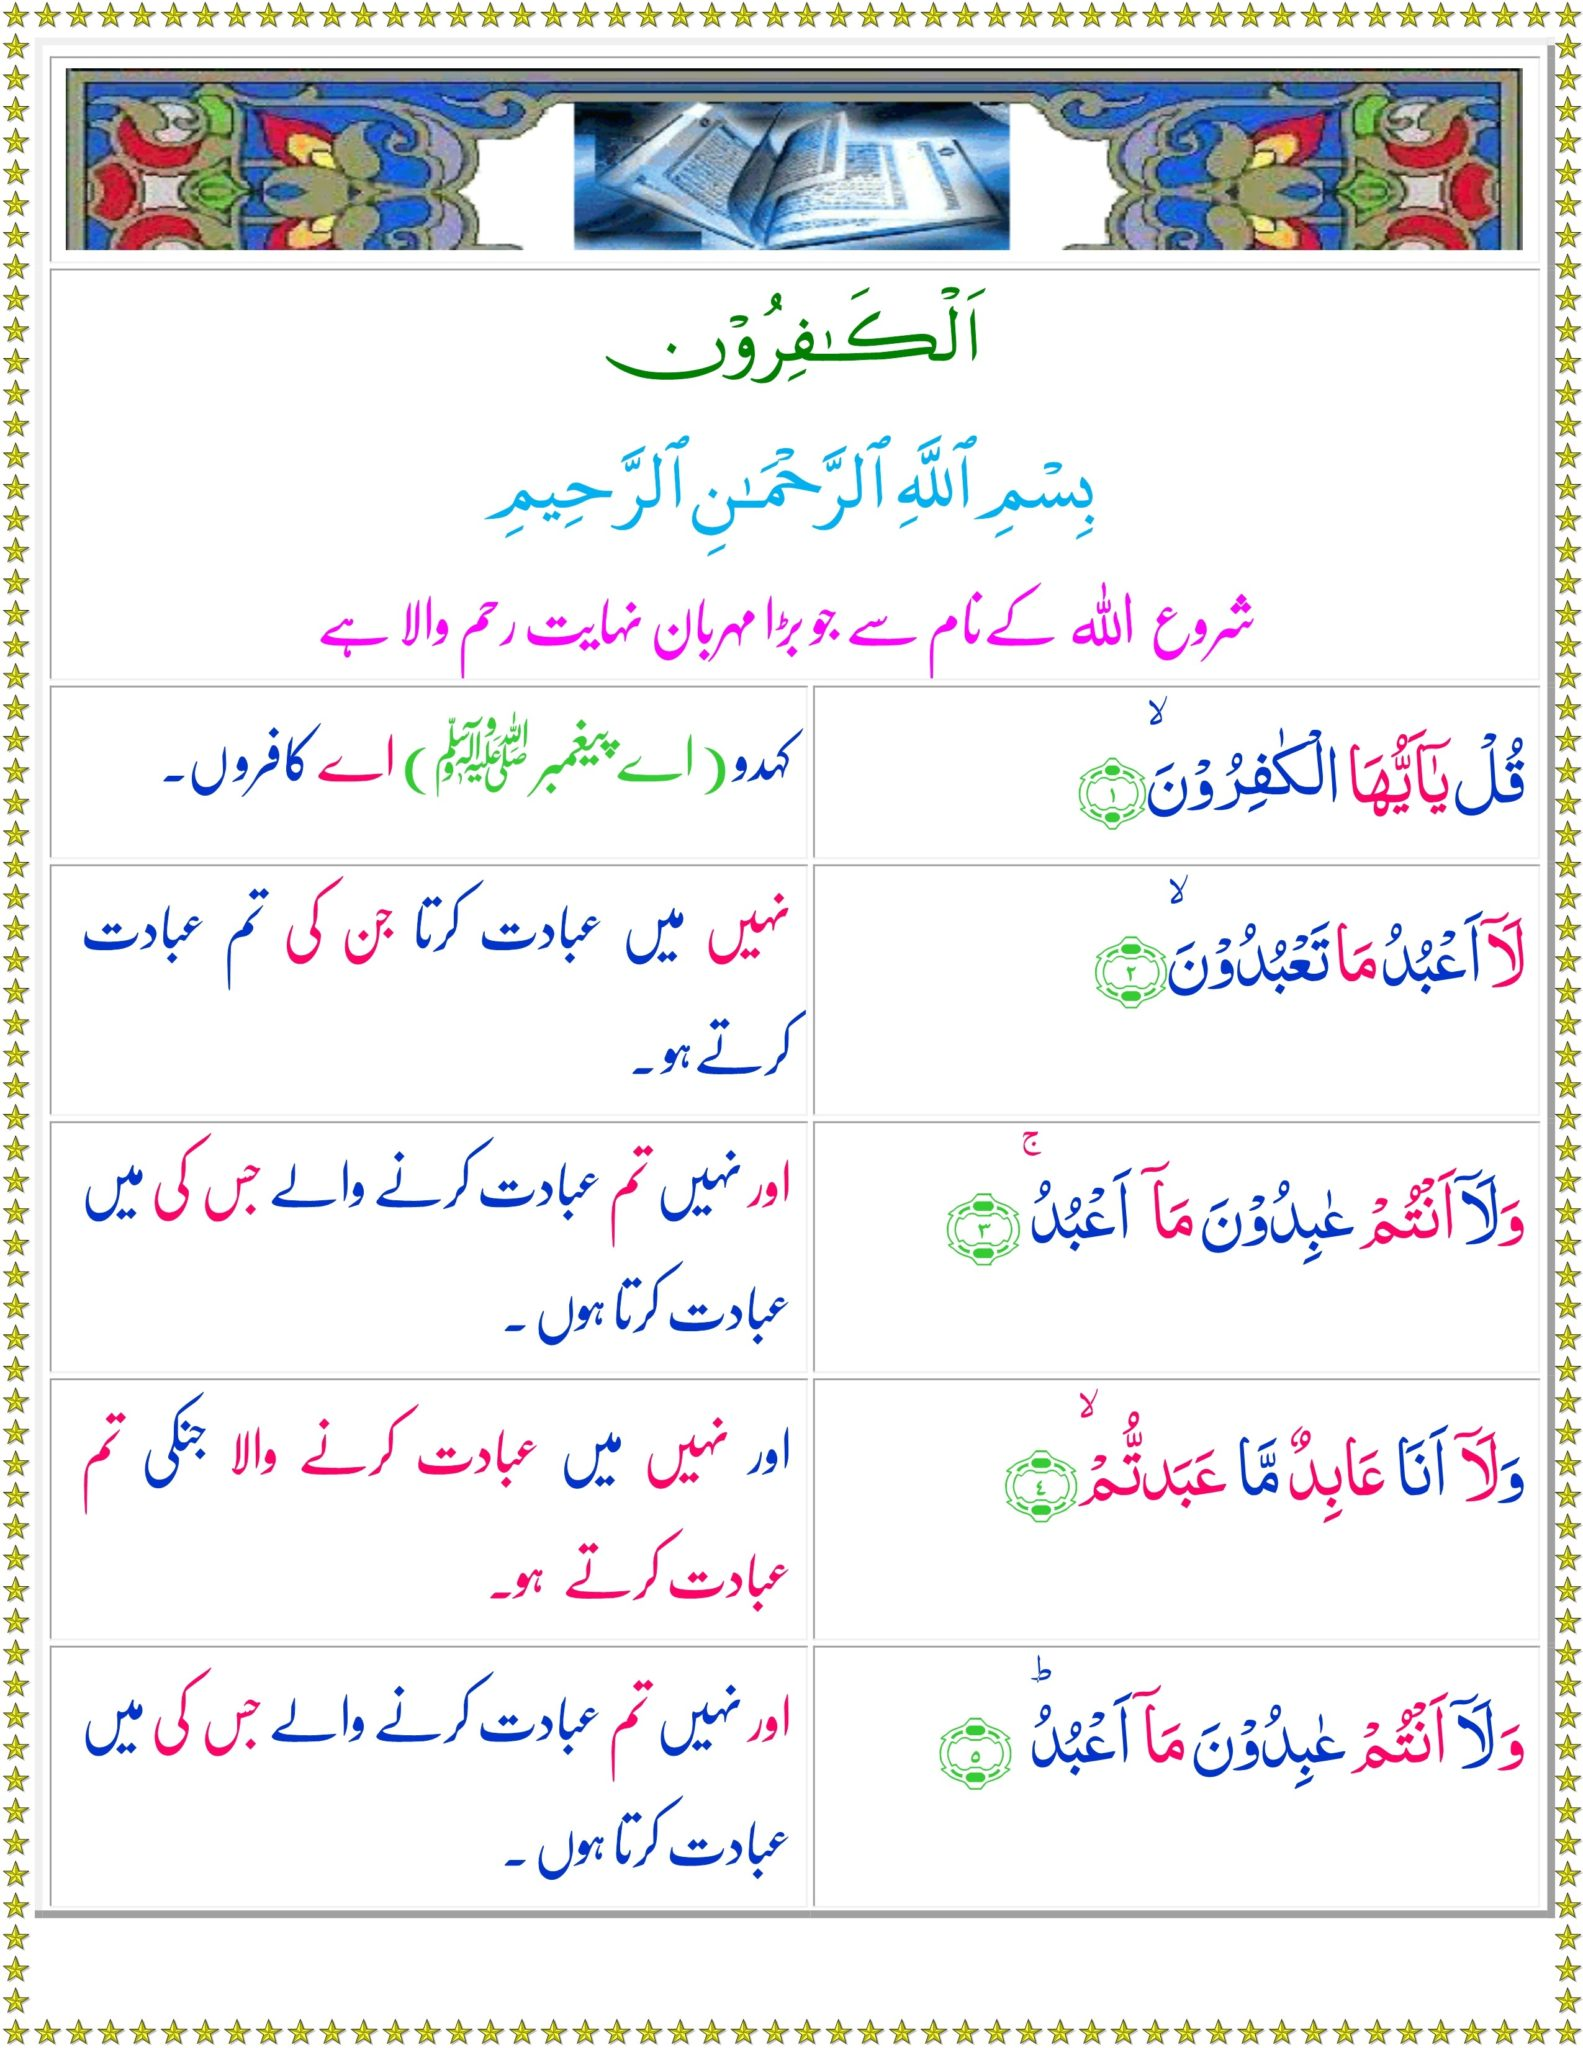 Surah Kafiroon translation in Urdu, Hindi